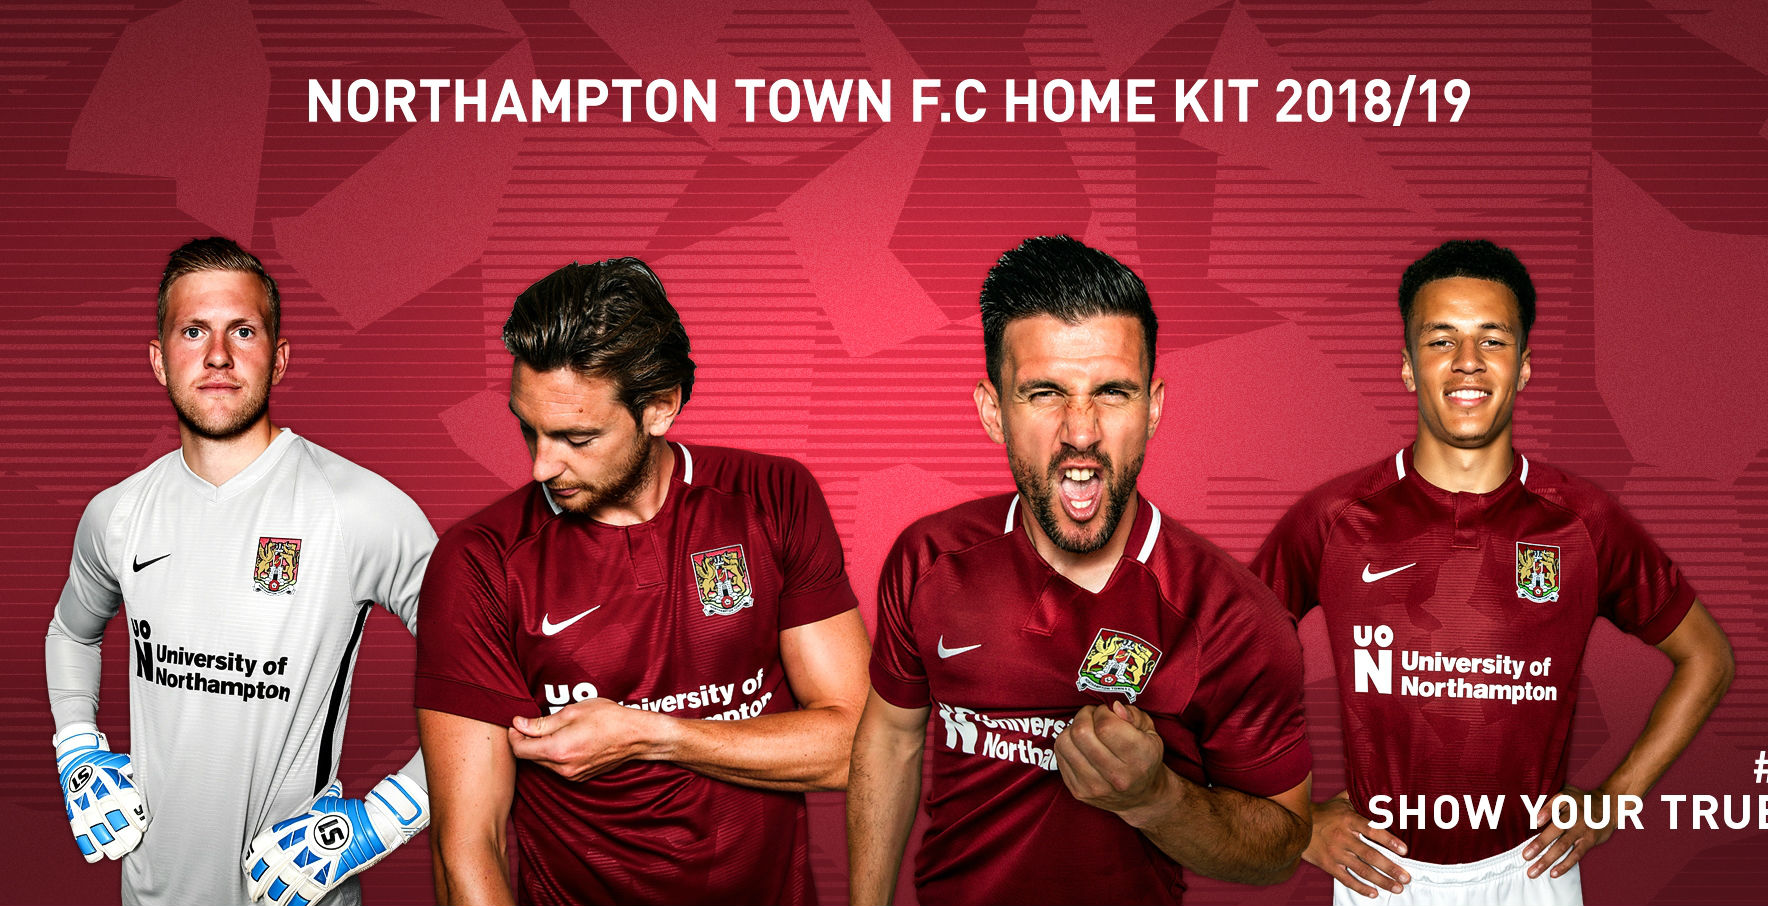 cb7f73db97a Northampton Town FC Reveal Their 2018 19 Home Kit by Nike